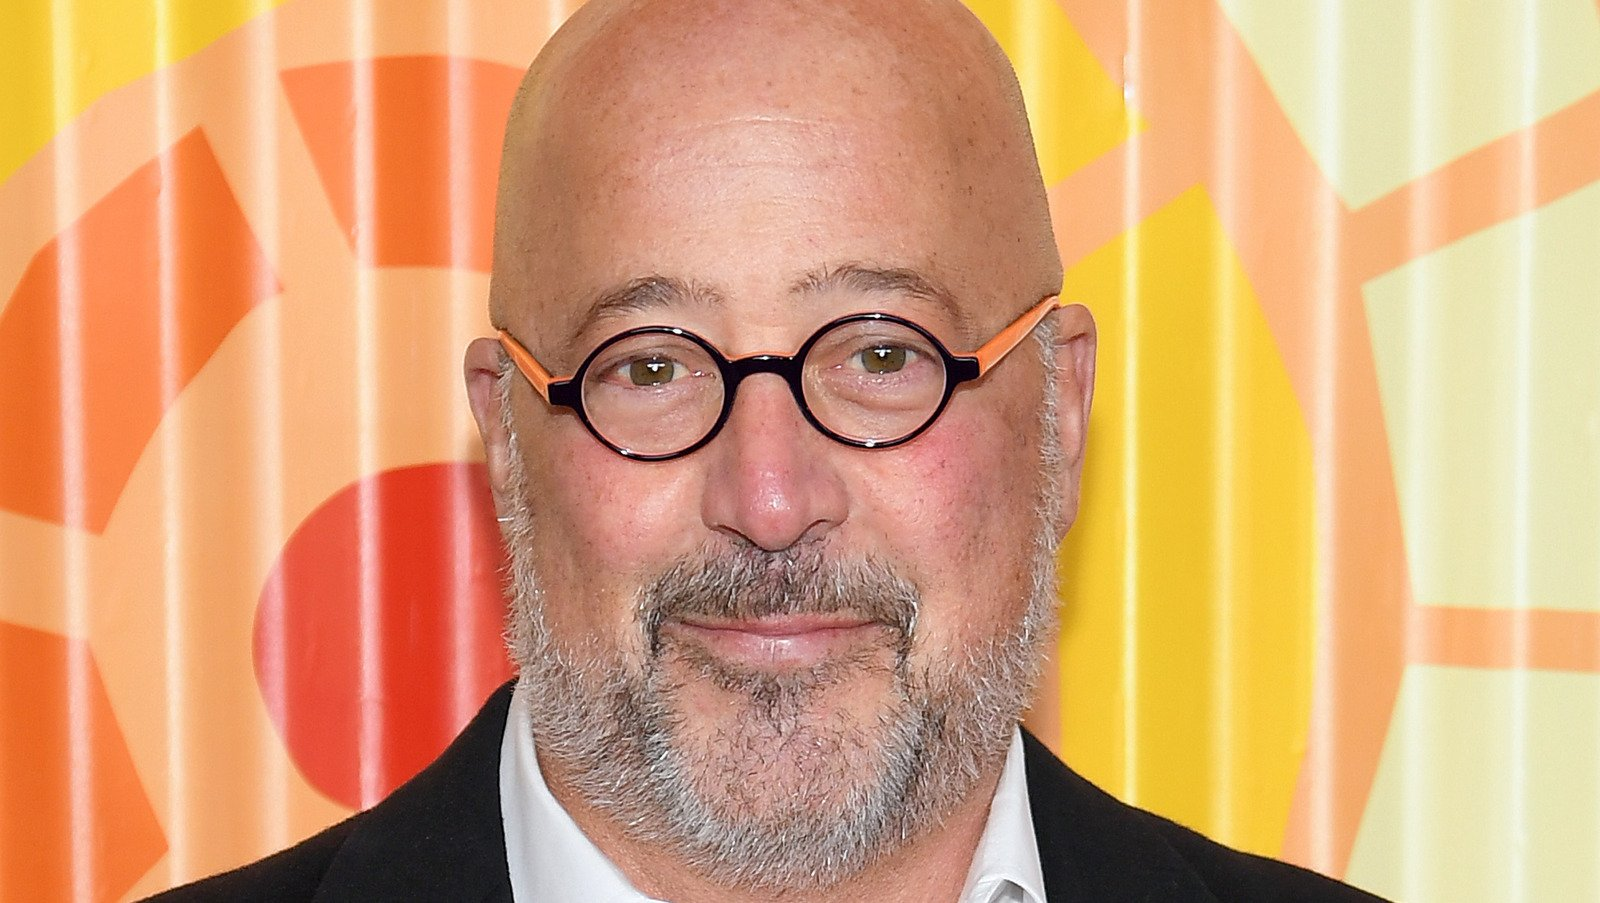 Why Andrew Zimmern Didn't Like The 'Bizarre Foods' Name